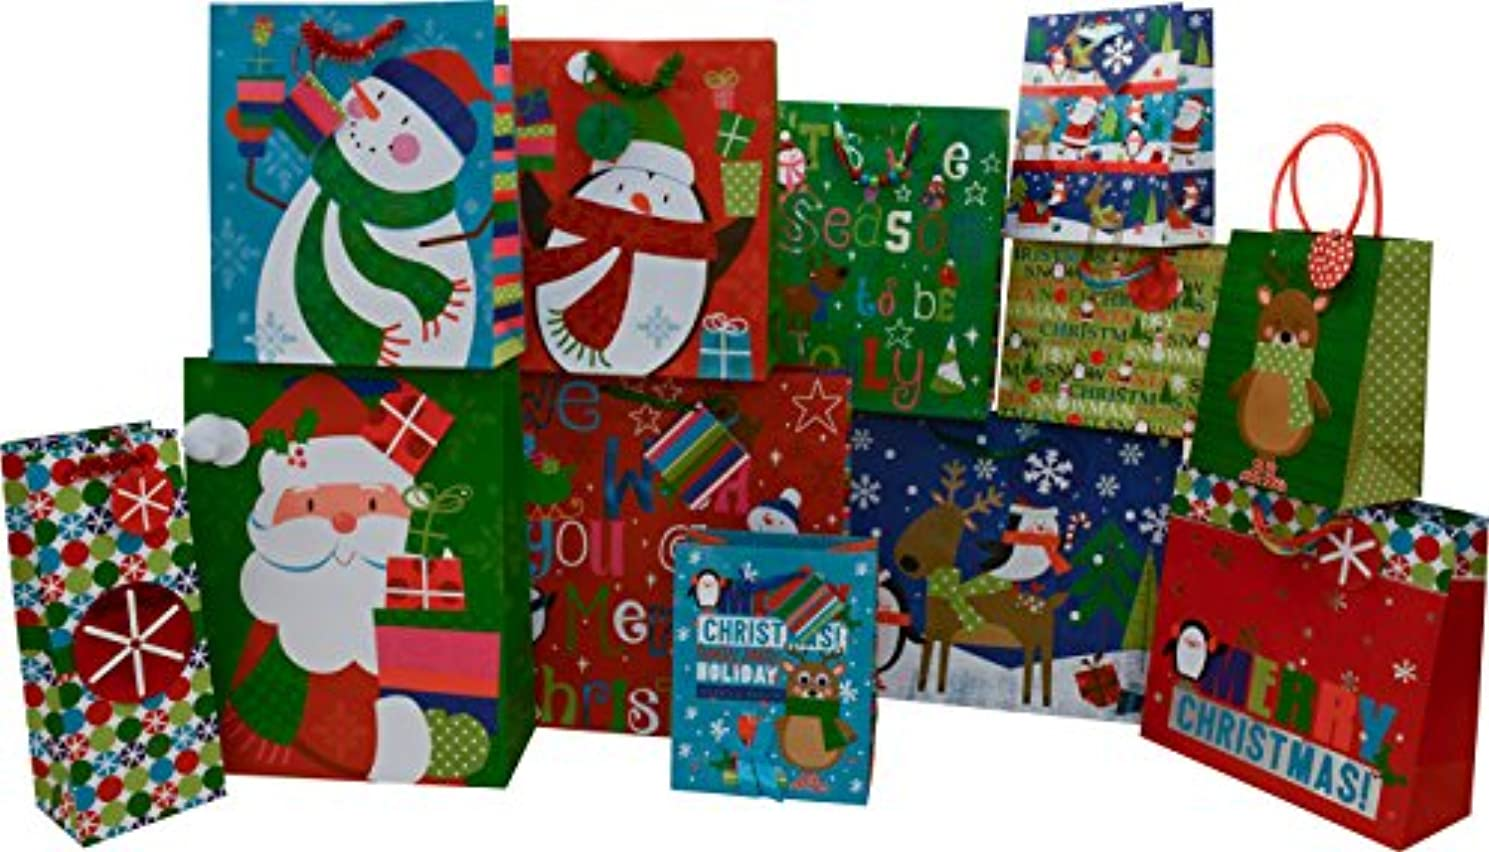 12 Christmas gift bags Small Medium Large Square and Vogue bulk assorted styles and sizes with handles and tags